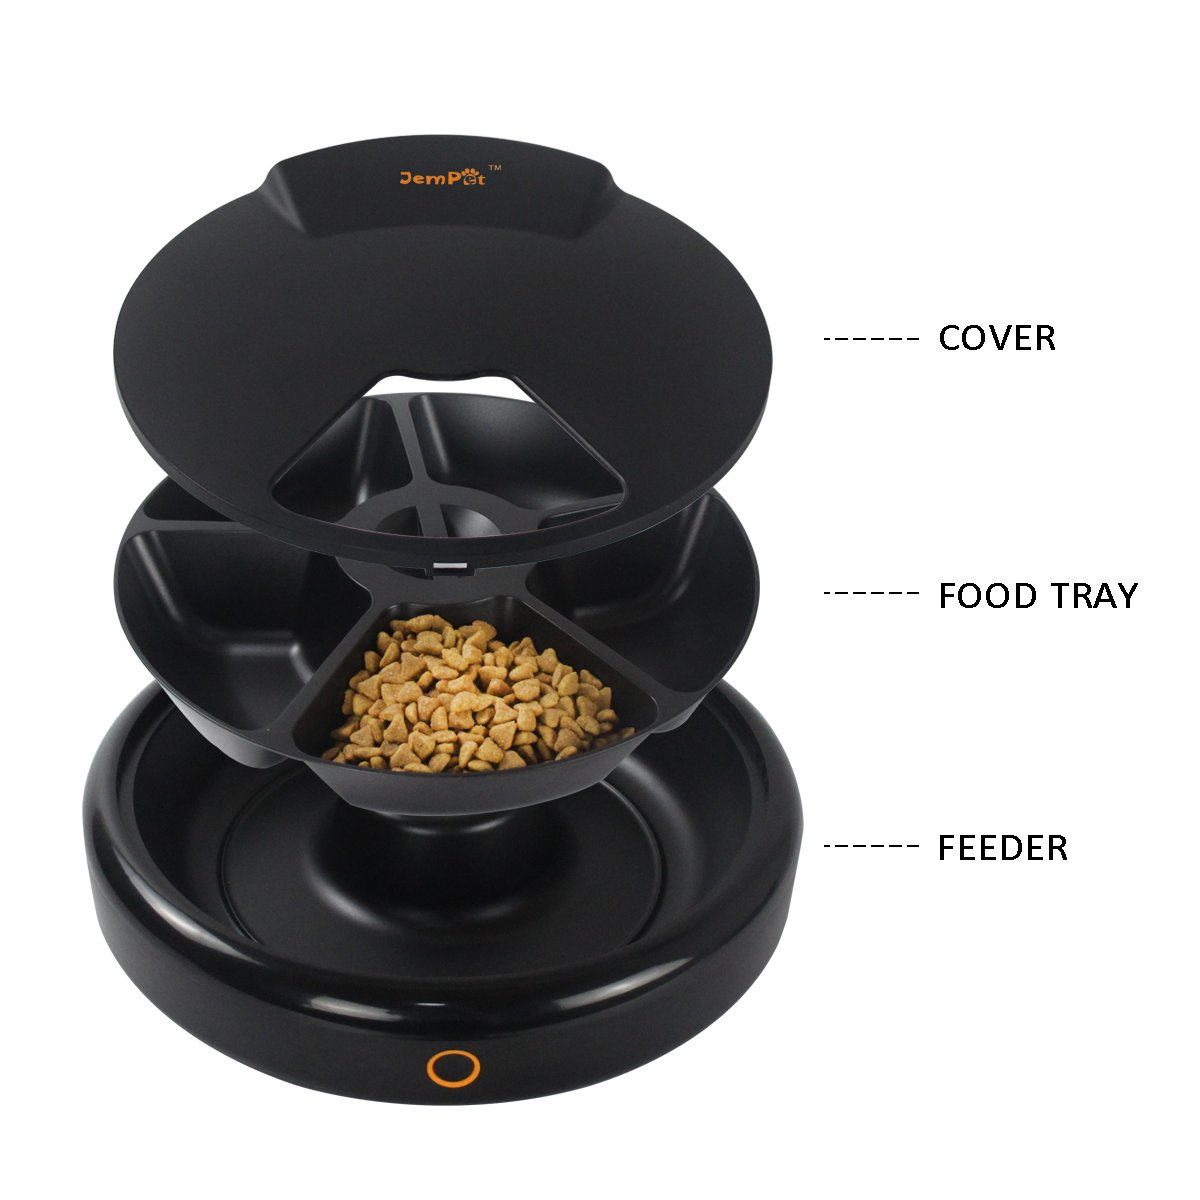 JEMPET Automatic Pet Feeder Cats Dogs, 5 Meal Trays Dry Wet Food, Auto Pet Food Dispenser Programmed Timer Voice Recording Function, 5 x 240ml by JEMPET (Image #4)